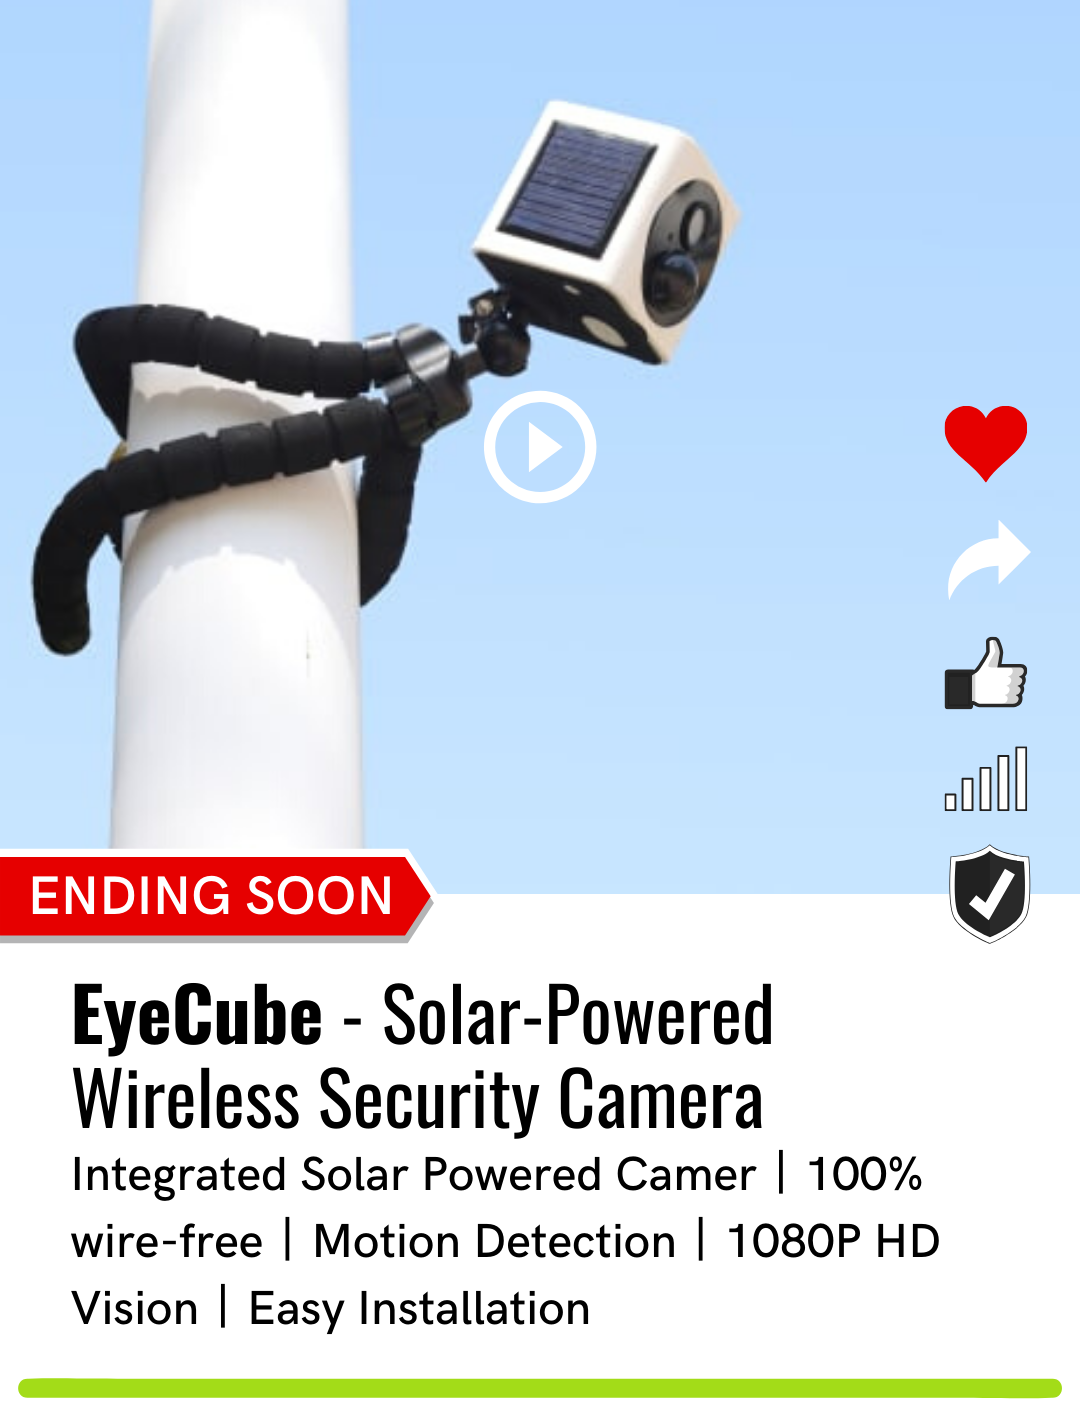 Eyecube solar powered wireless security camera